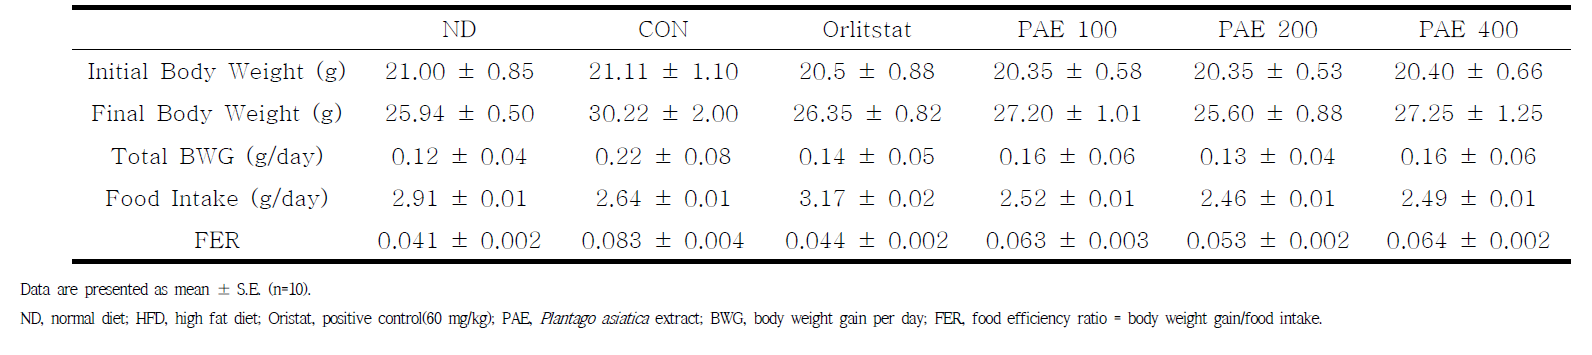 Effect of Plantago asiatica extract for 6 weeks on body weight, body weight gain, food intake, FER in C57BL/6J mice fed hight-fat diet.